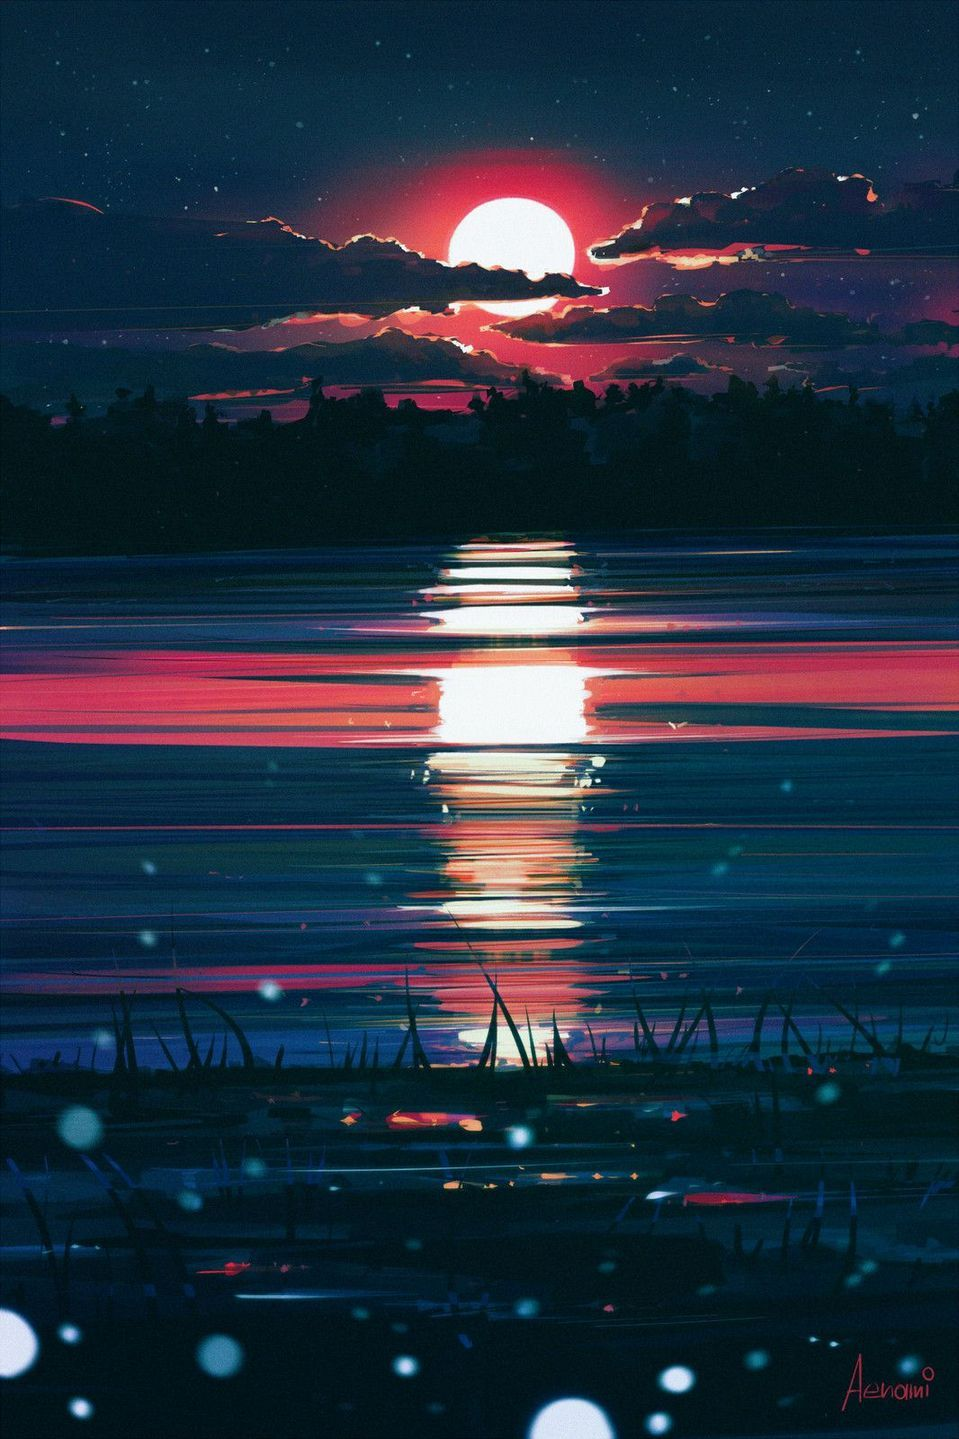 Android Phone Best Wallpaper 3d Wallpapers Nature Photography Anime Scenery Beautiful Landscapes